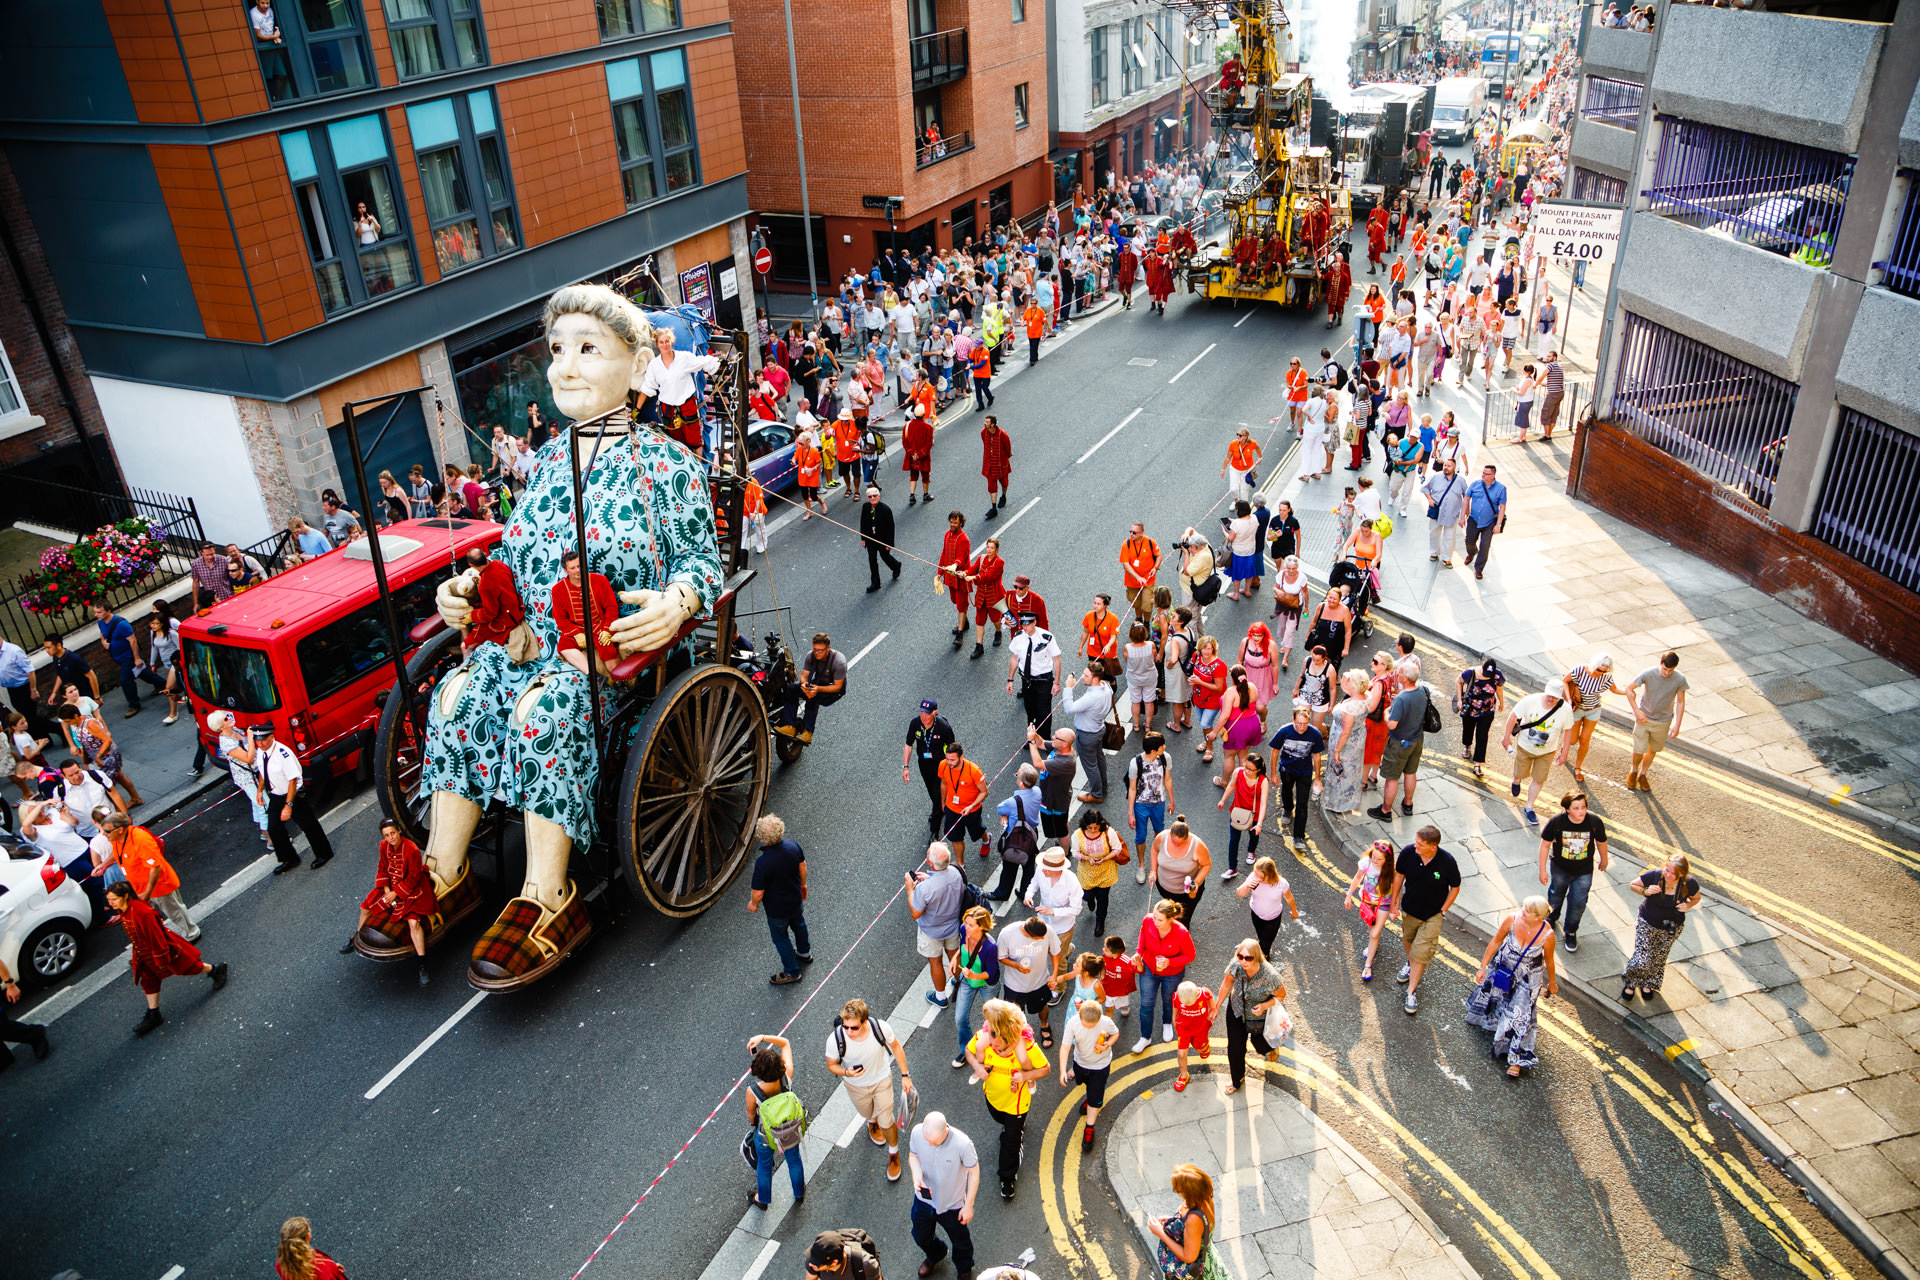 2014 - The Granny Giant going up Mount Pleasant.